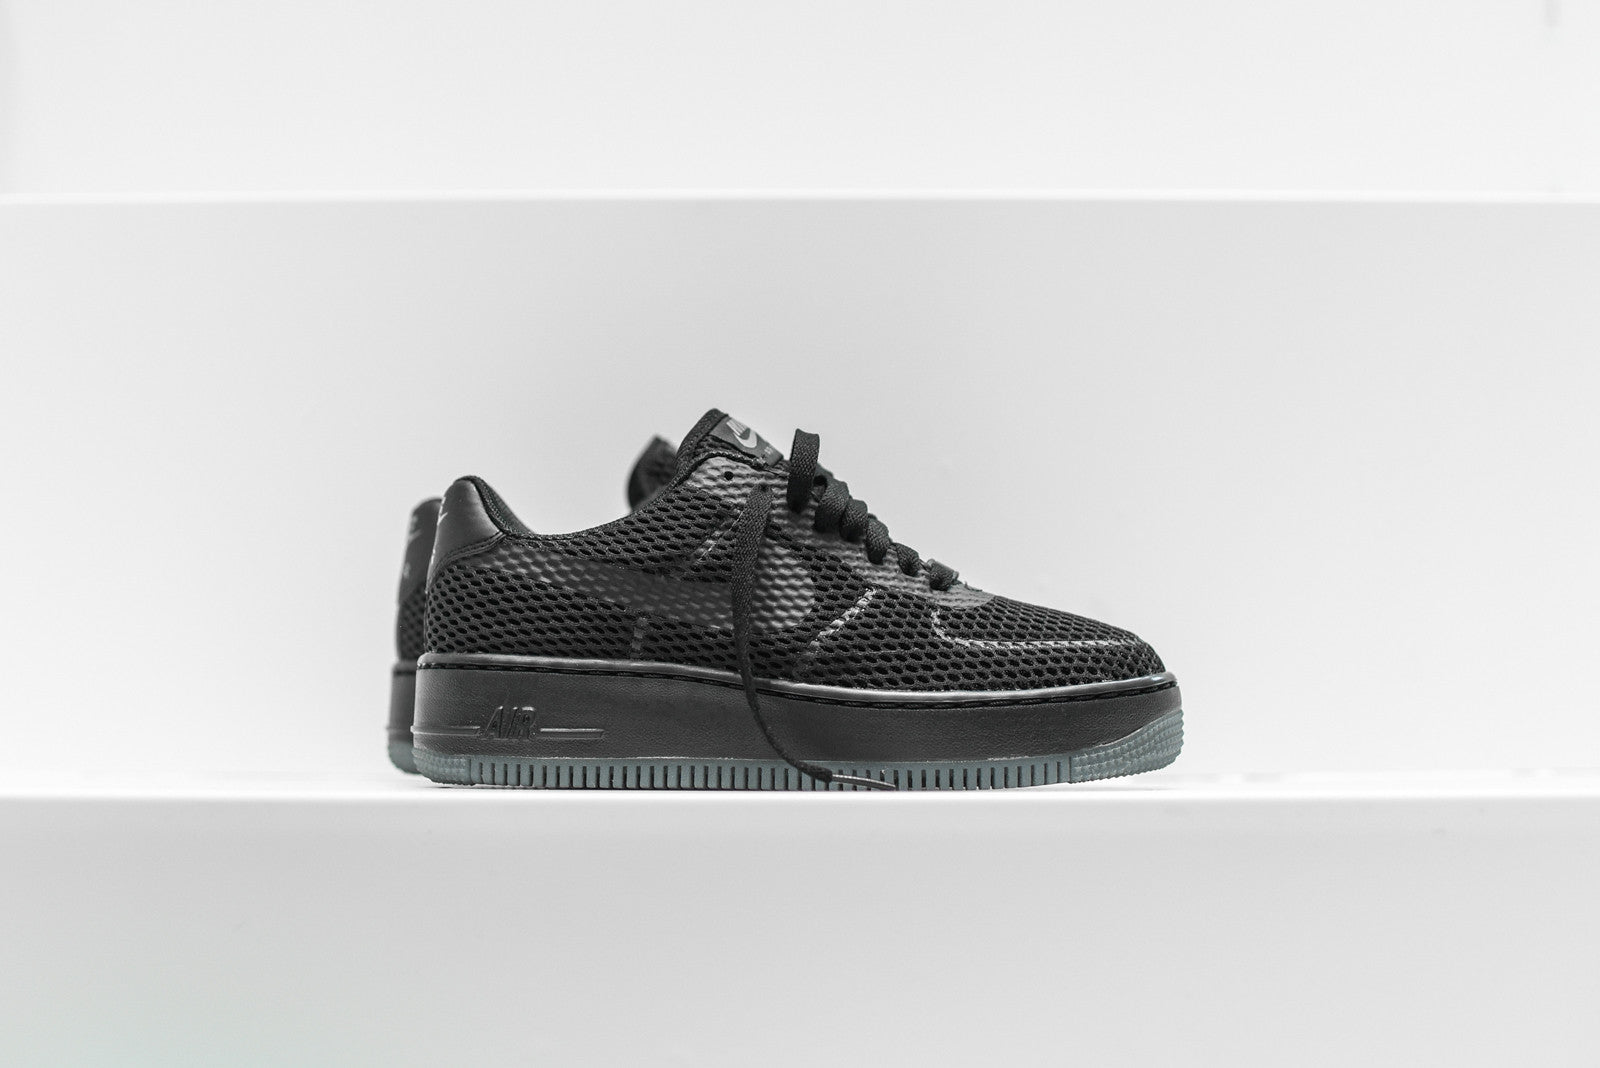 Nike WMNS Air Force 1 Low Upstep BR - Black